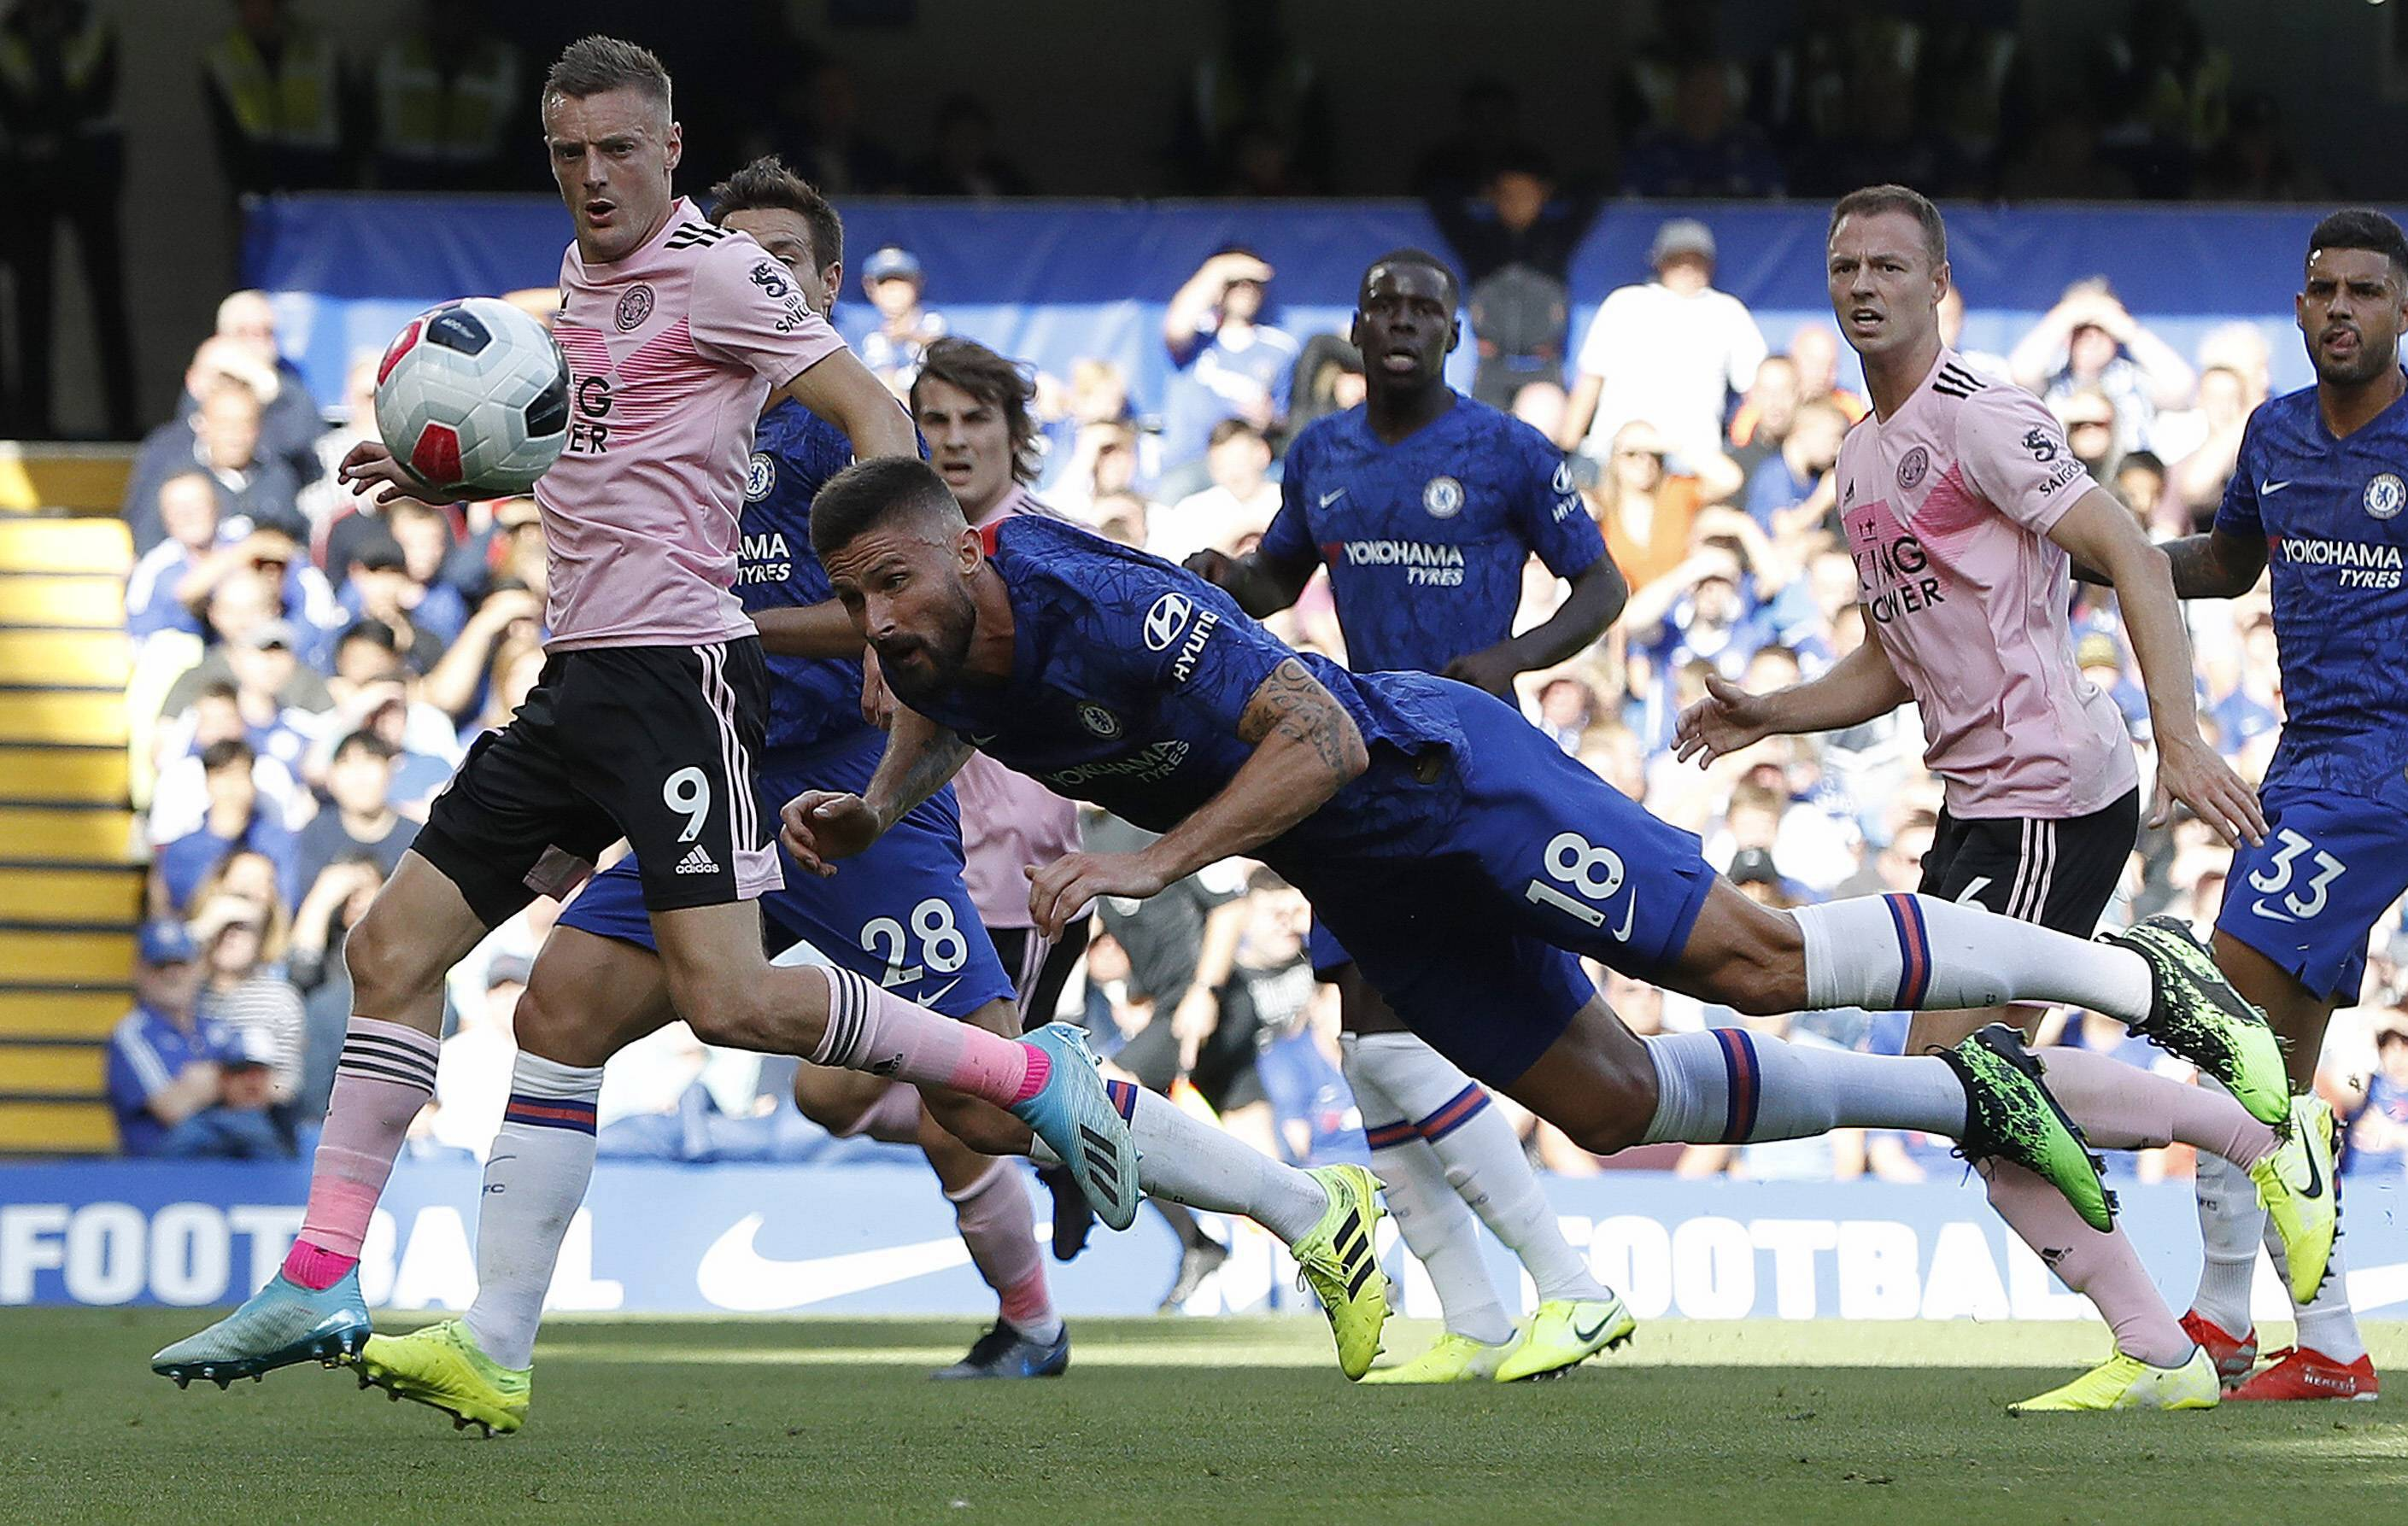 Football - Etranger - Premier League : Norwich-Chelsea en direct